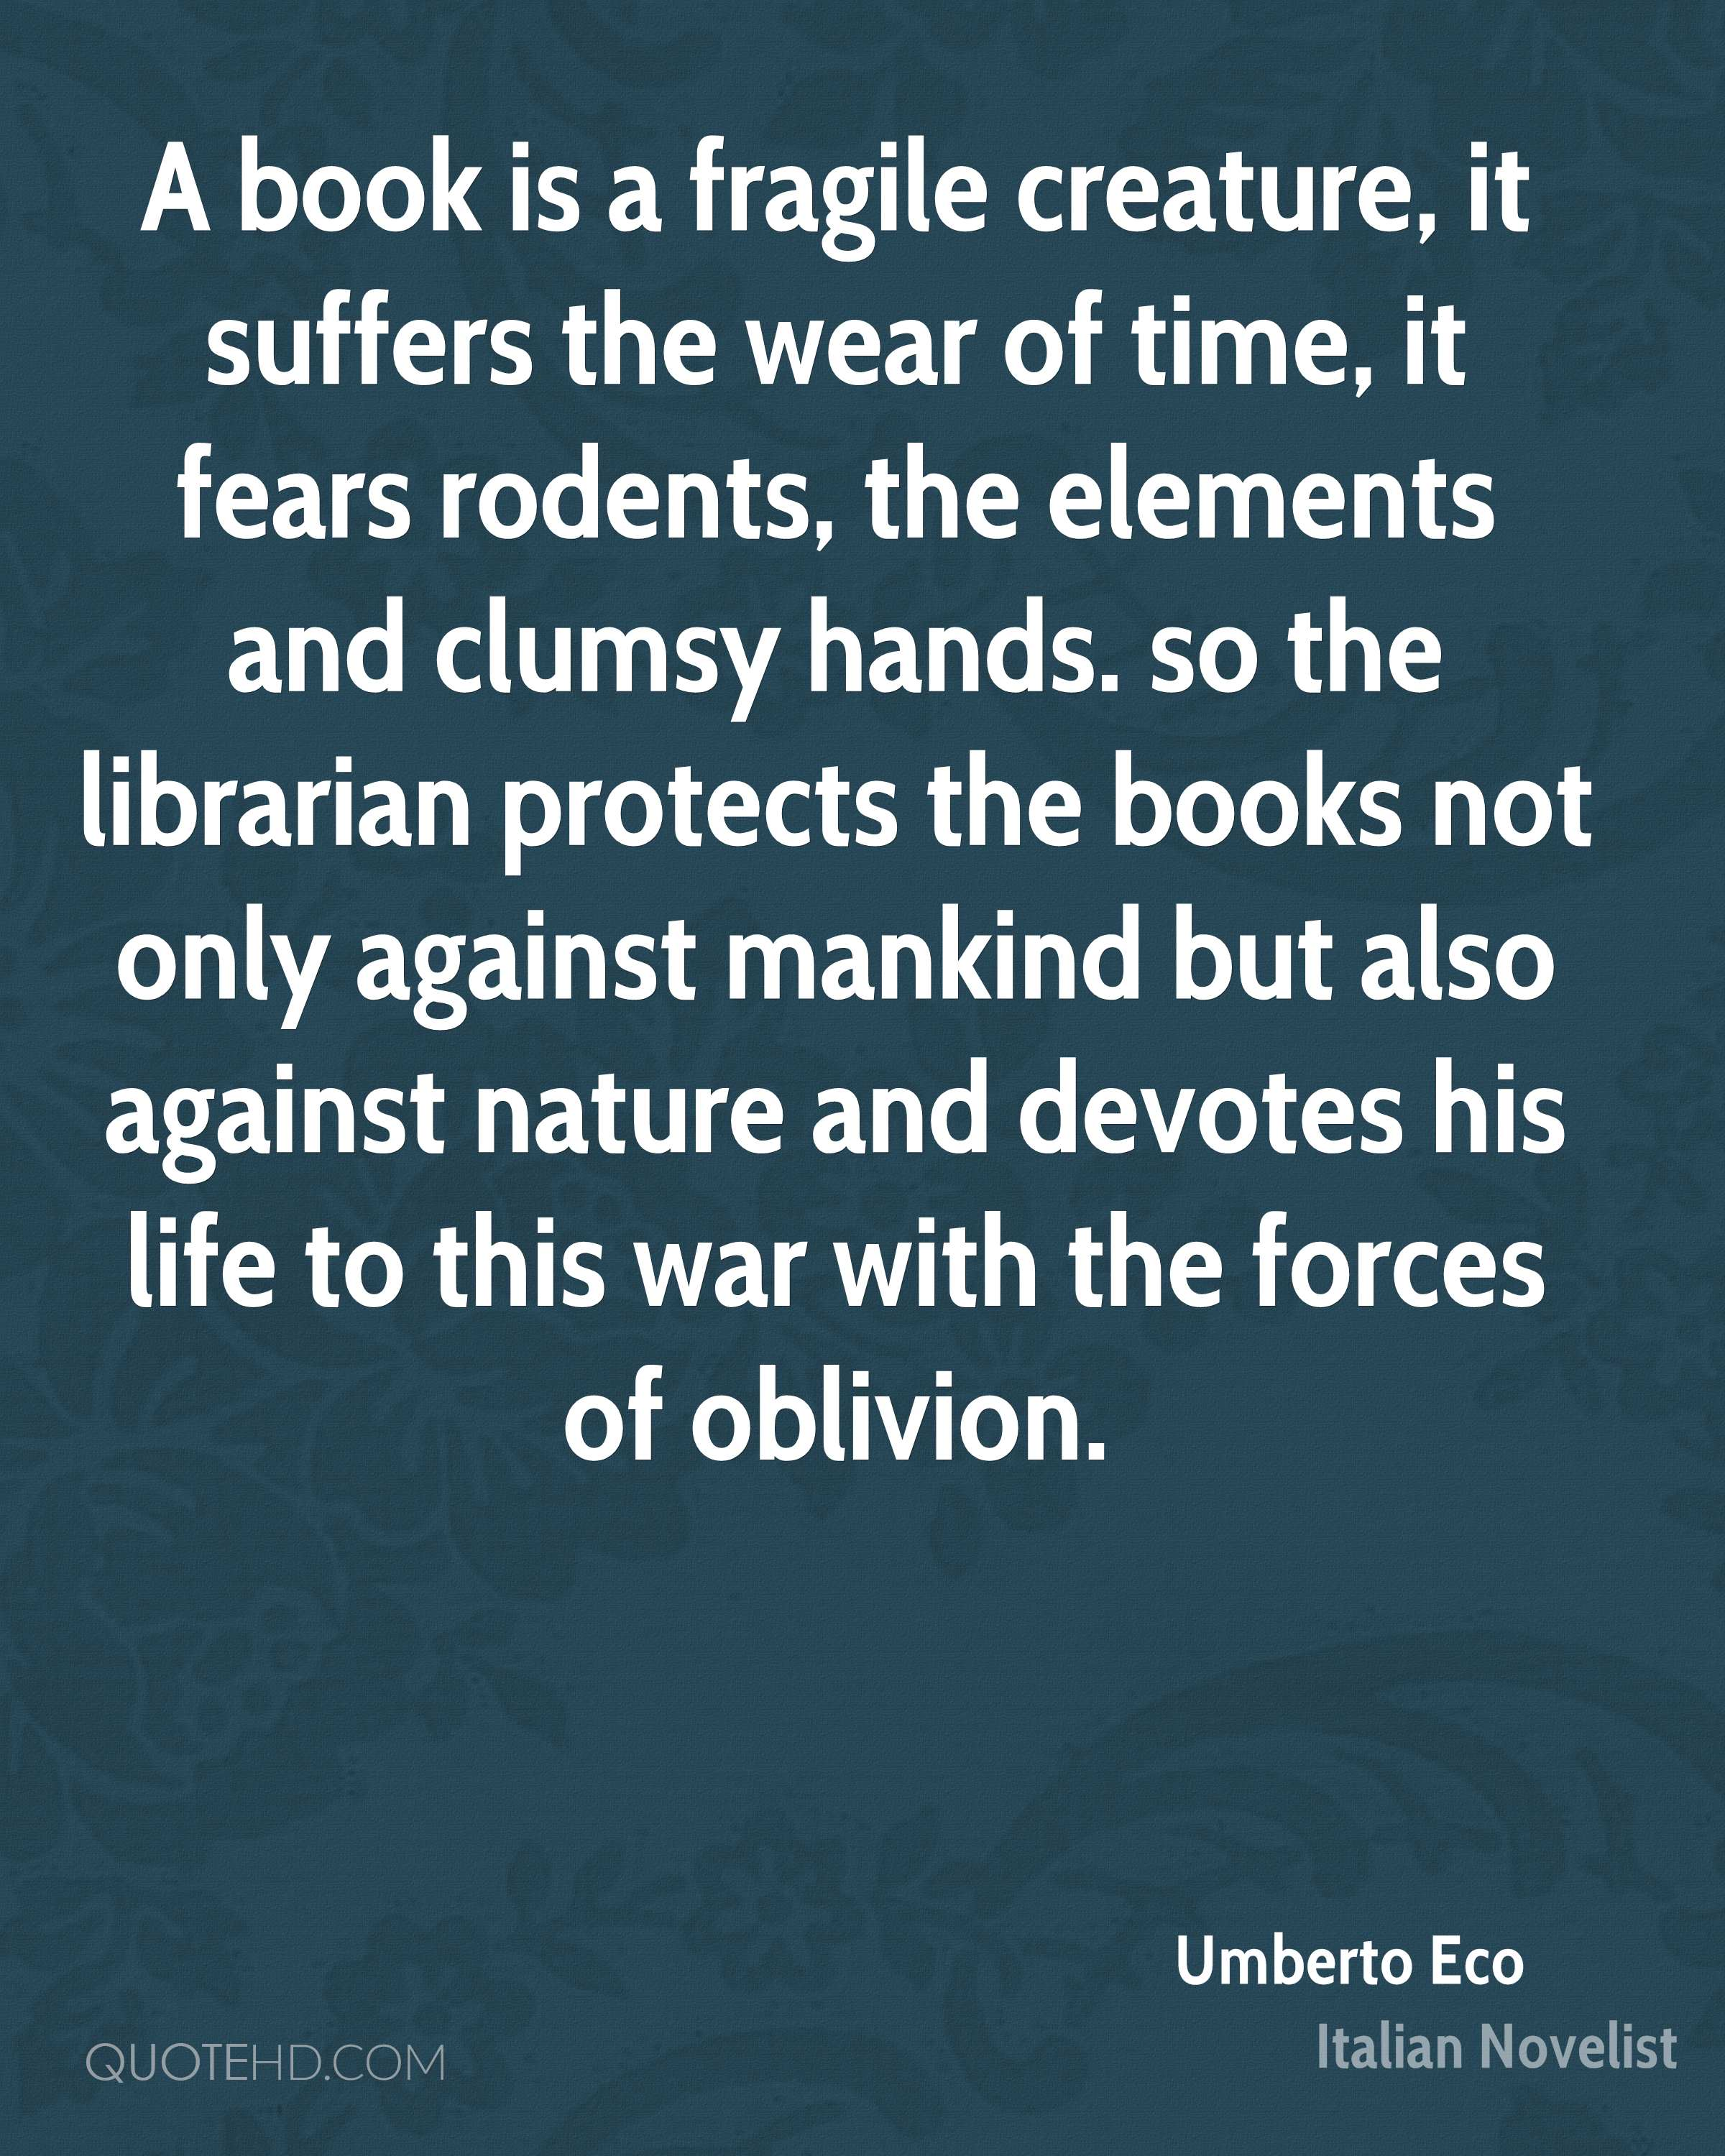 A book is a fragile creature, it suffers the wear of time, it fears rodents, the elements and clumsy hands. so the librarian protects the books not only against mankind but also against nature and devotes his life to this war with the forces of oblivion.